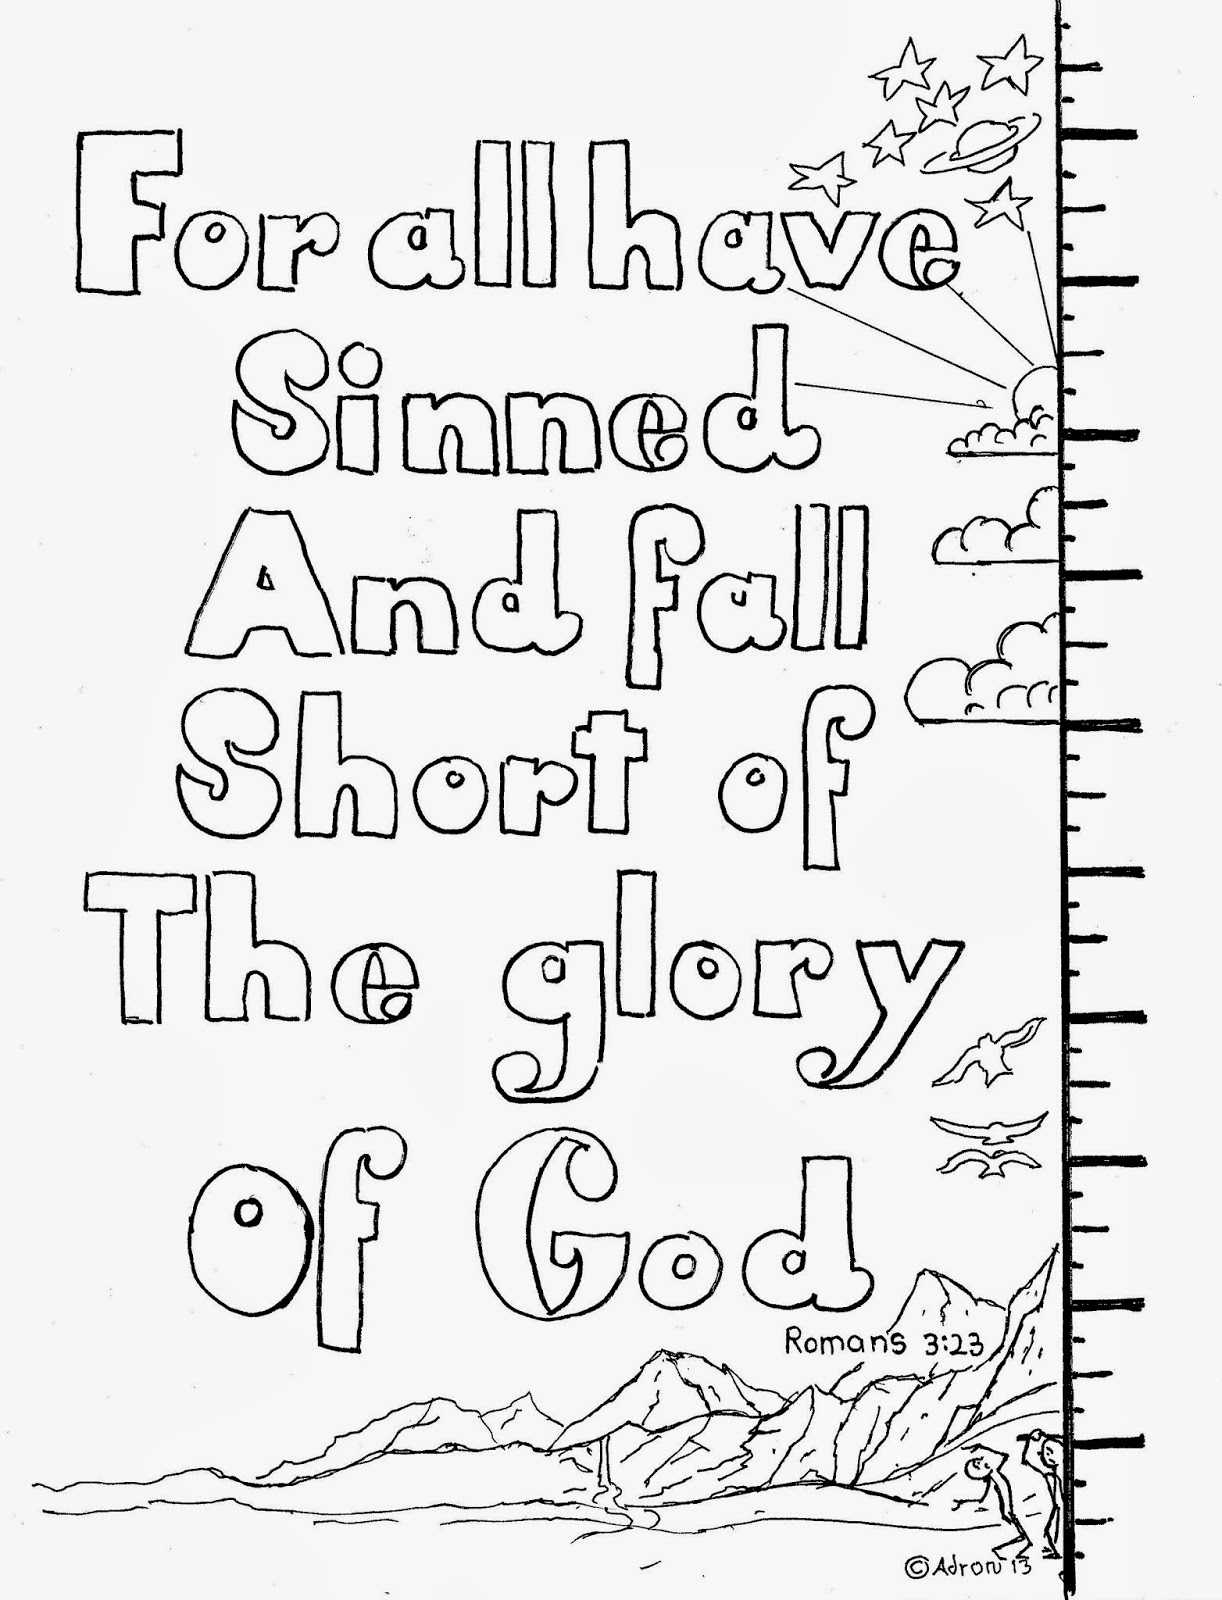 romans 5 8 coloring sheet pin by adron dozat on coloring pages for kid printable romans 5 8 sheet coloring